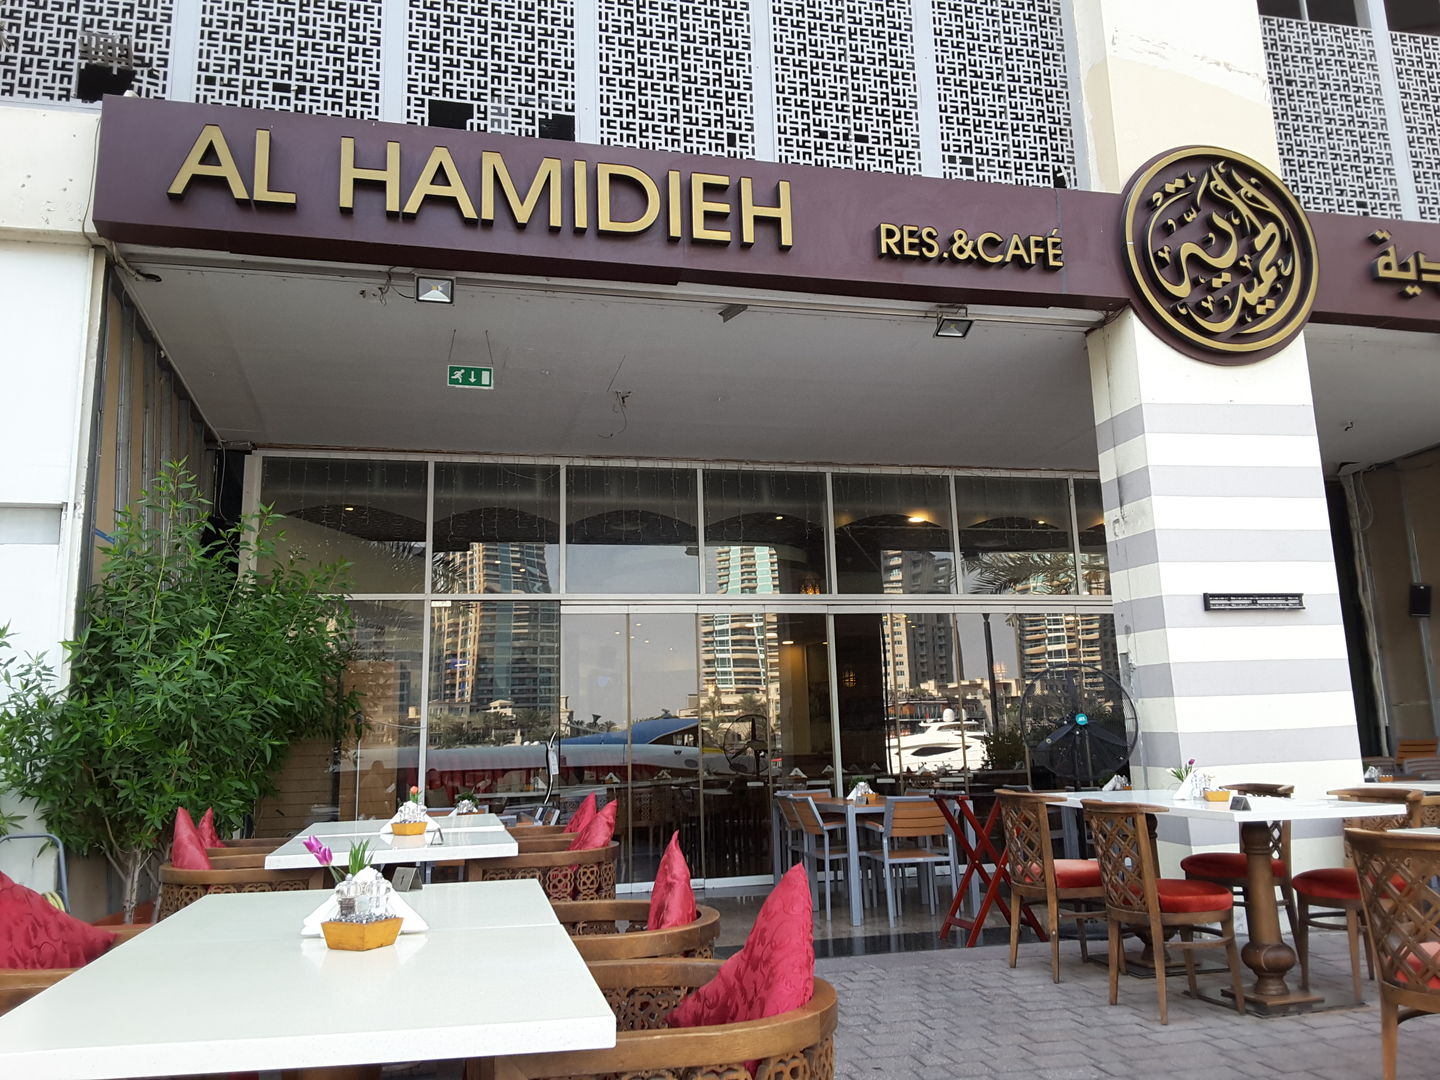 HiDubai-business-al-hamidieh-restaurant-cafe-food-beverage-restaurants-bars-dubai-marina-marsa-dubai-dubai-2